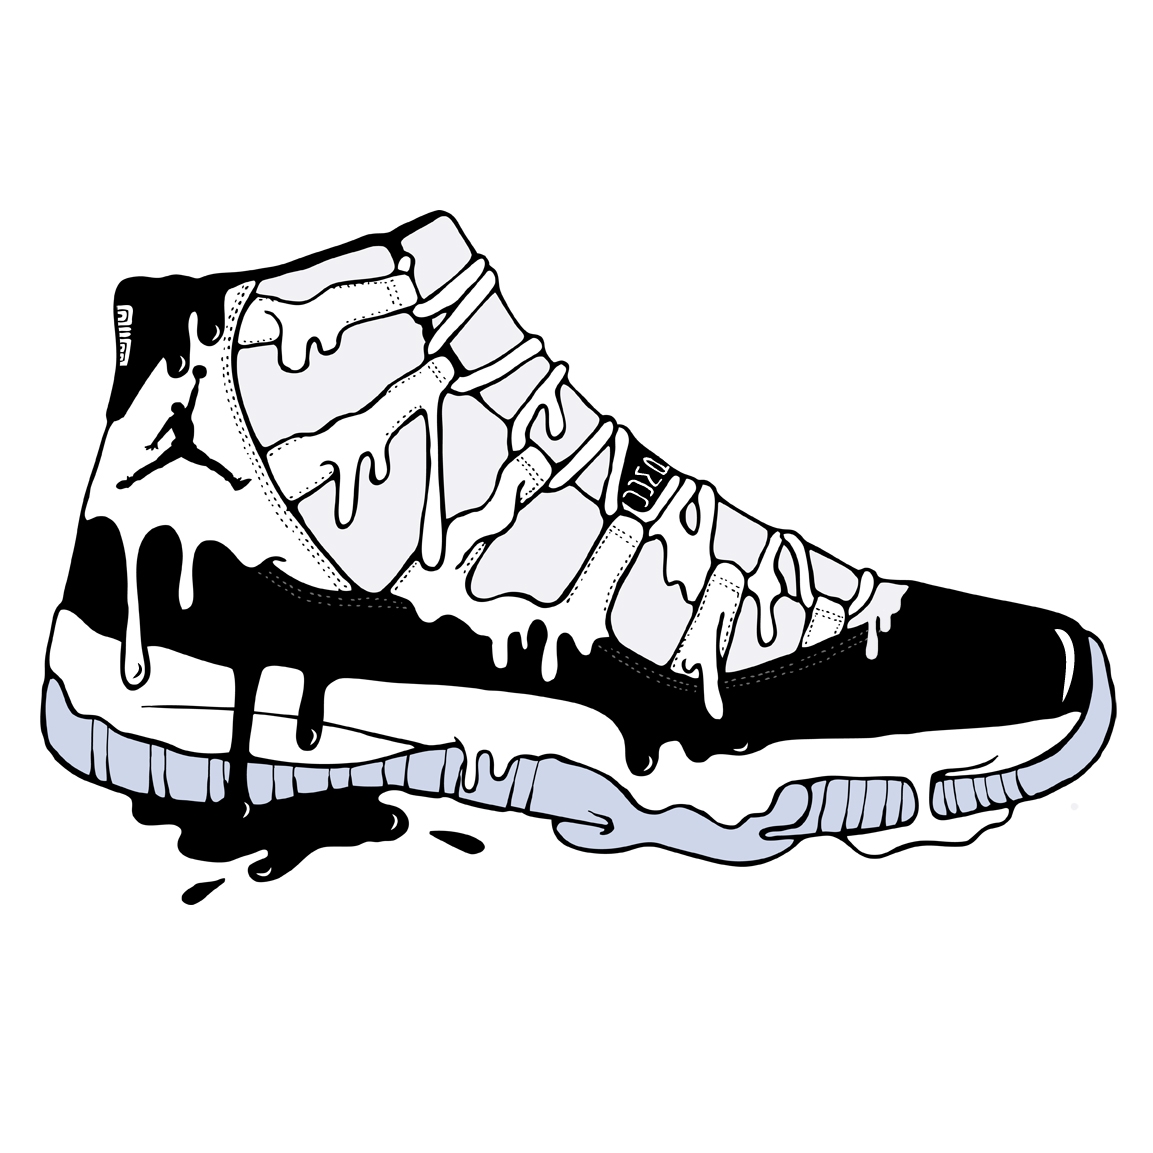 28 Jordan 11 Coloring Page Pictures | FREE COLORING PAGES